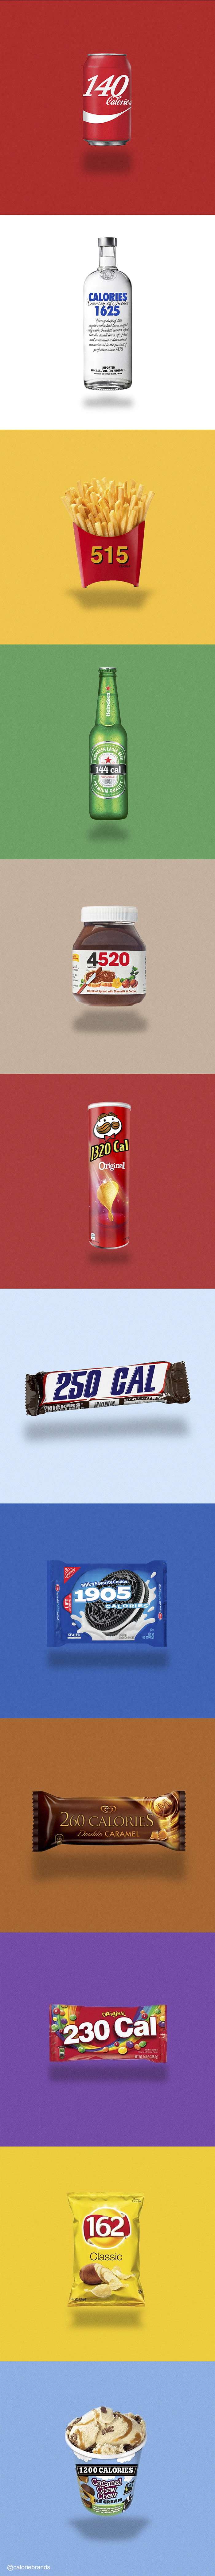 honest-product-logos-caloriebrands1